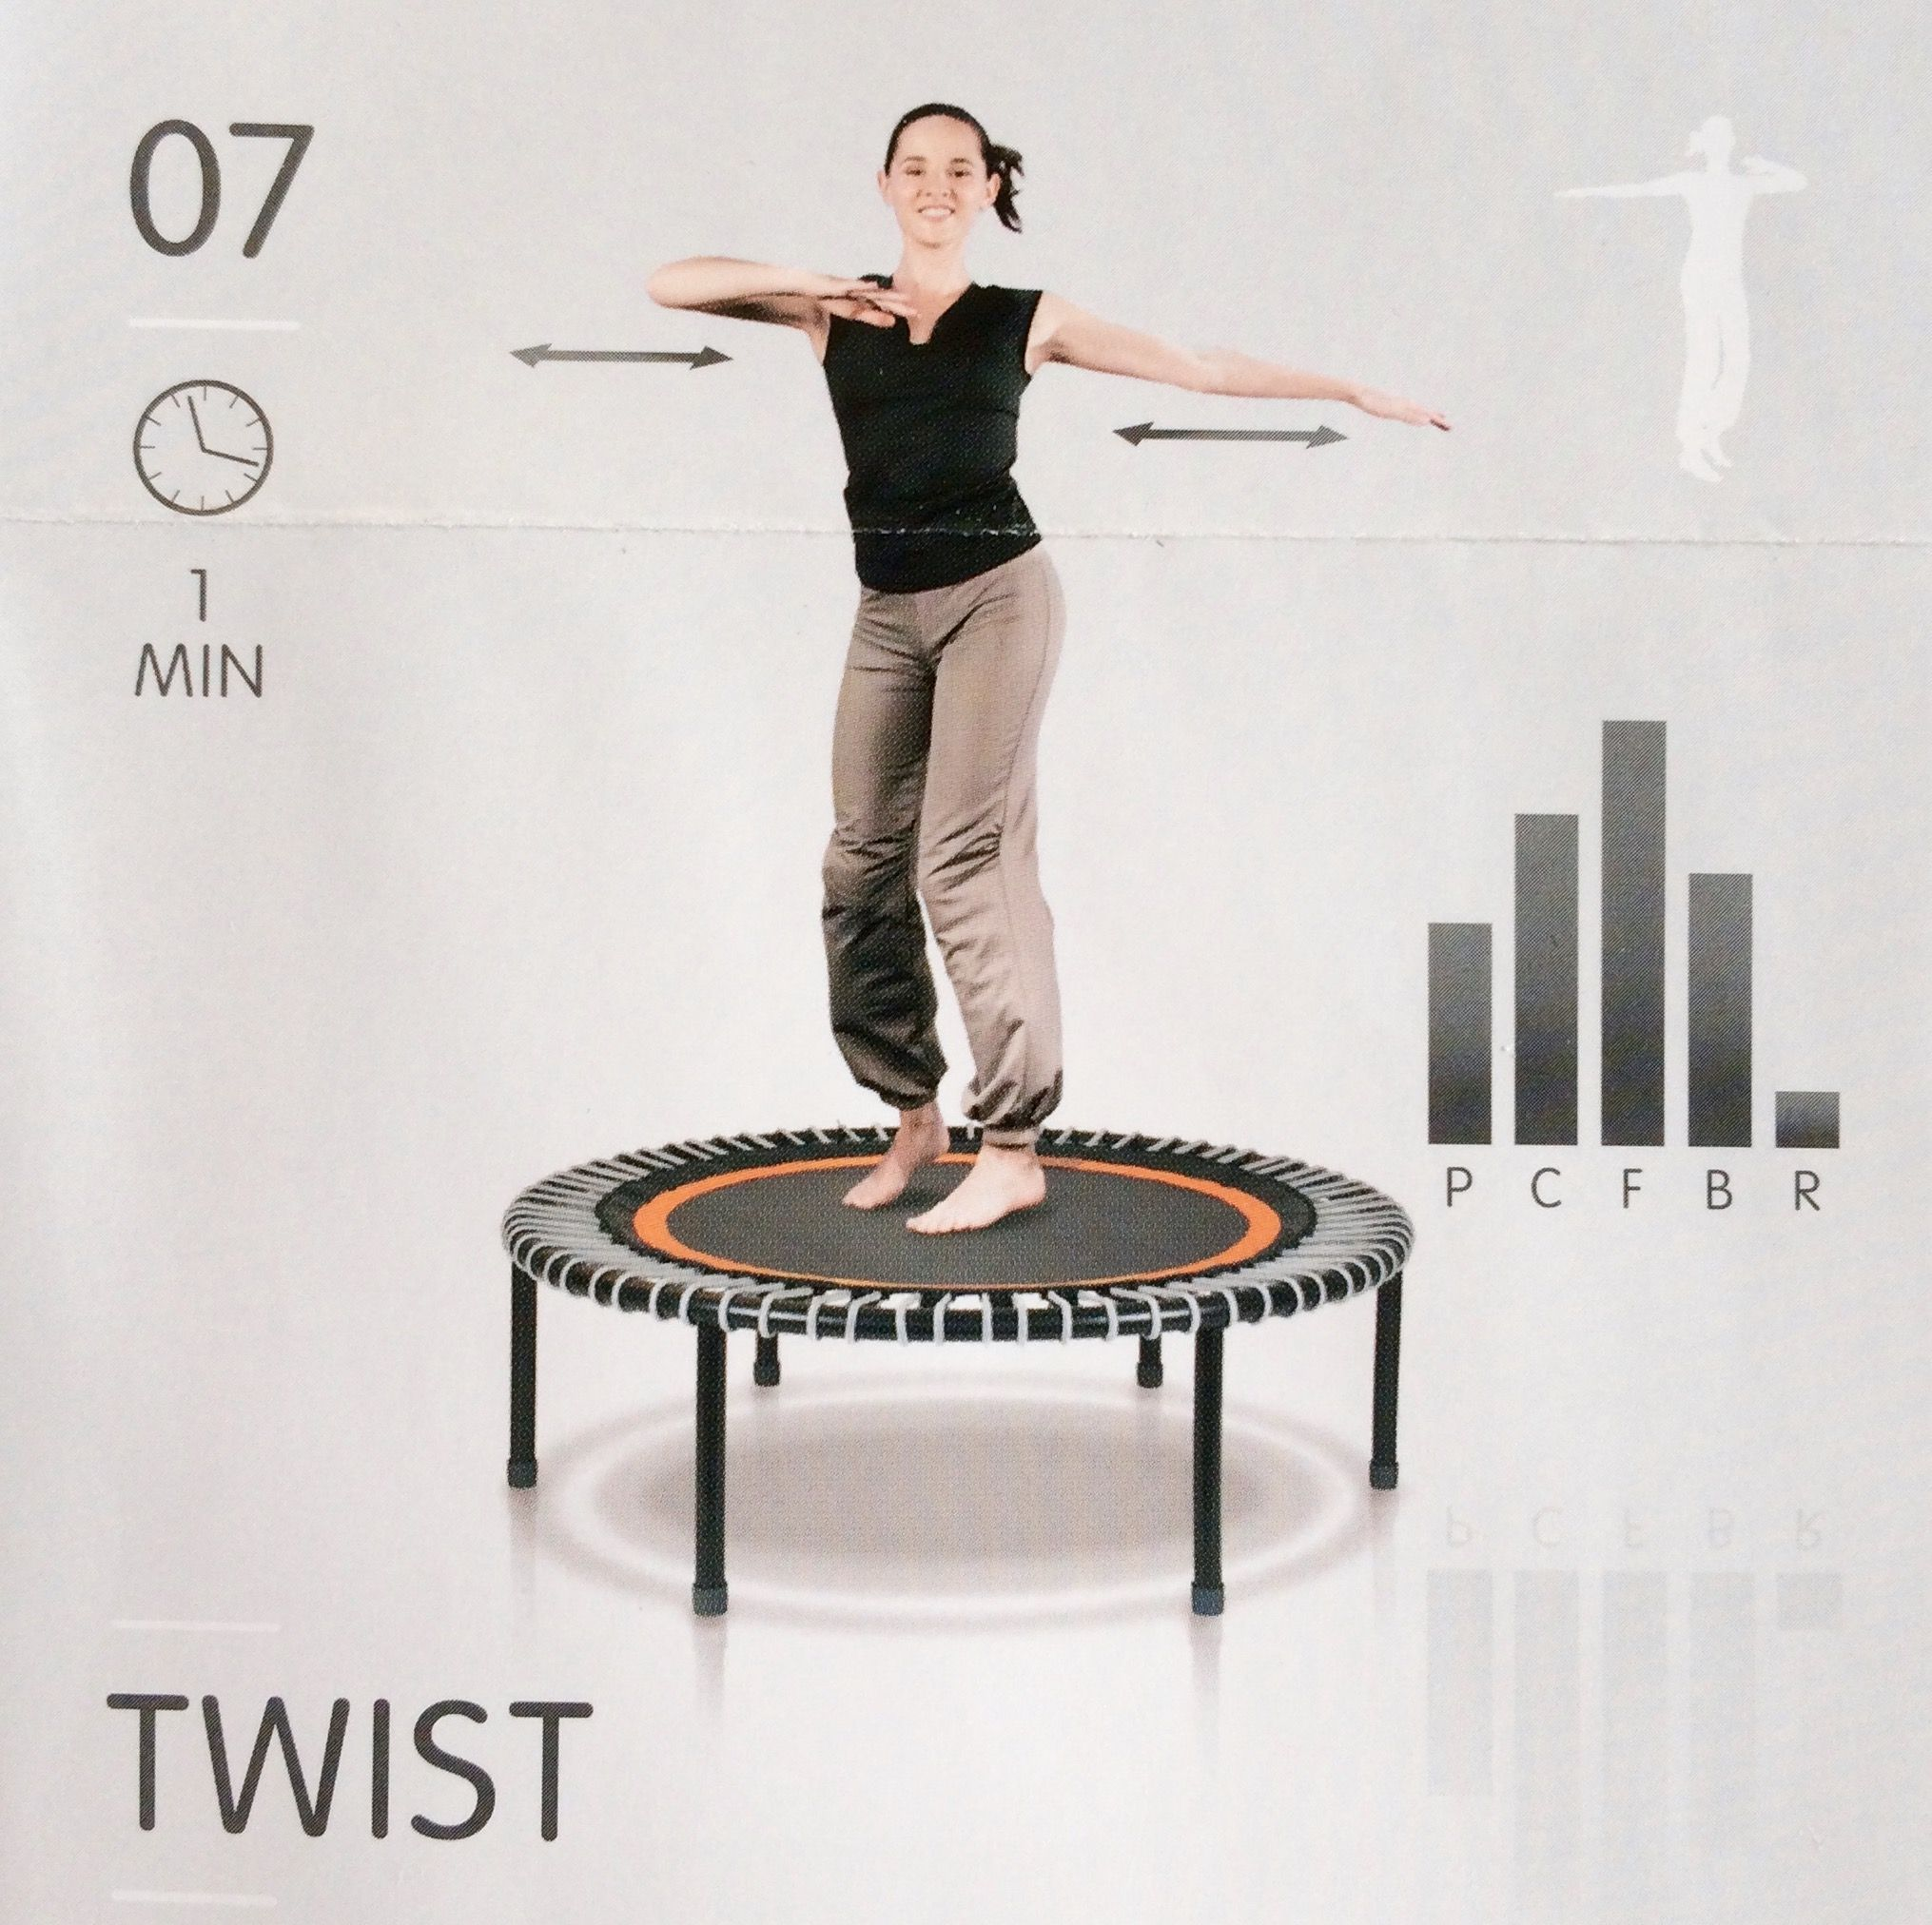 Try This Exercise For The Weekend: The TWIST 1) With Your